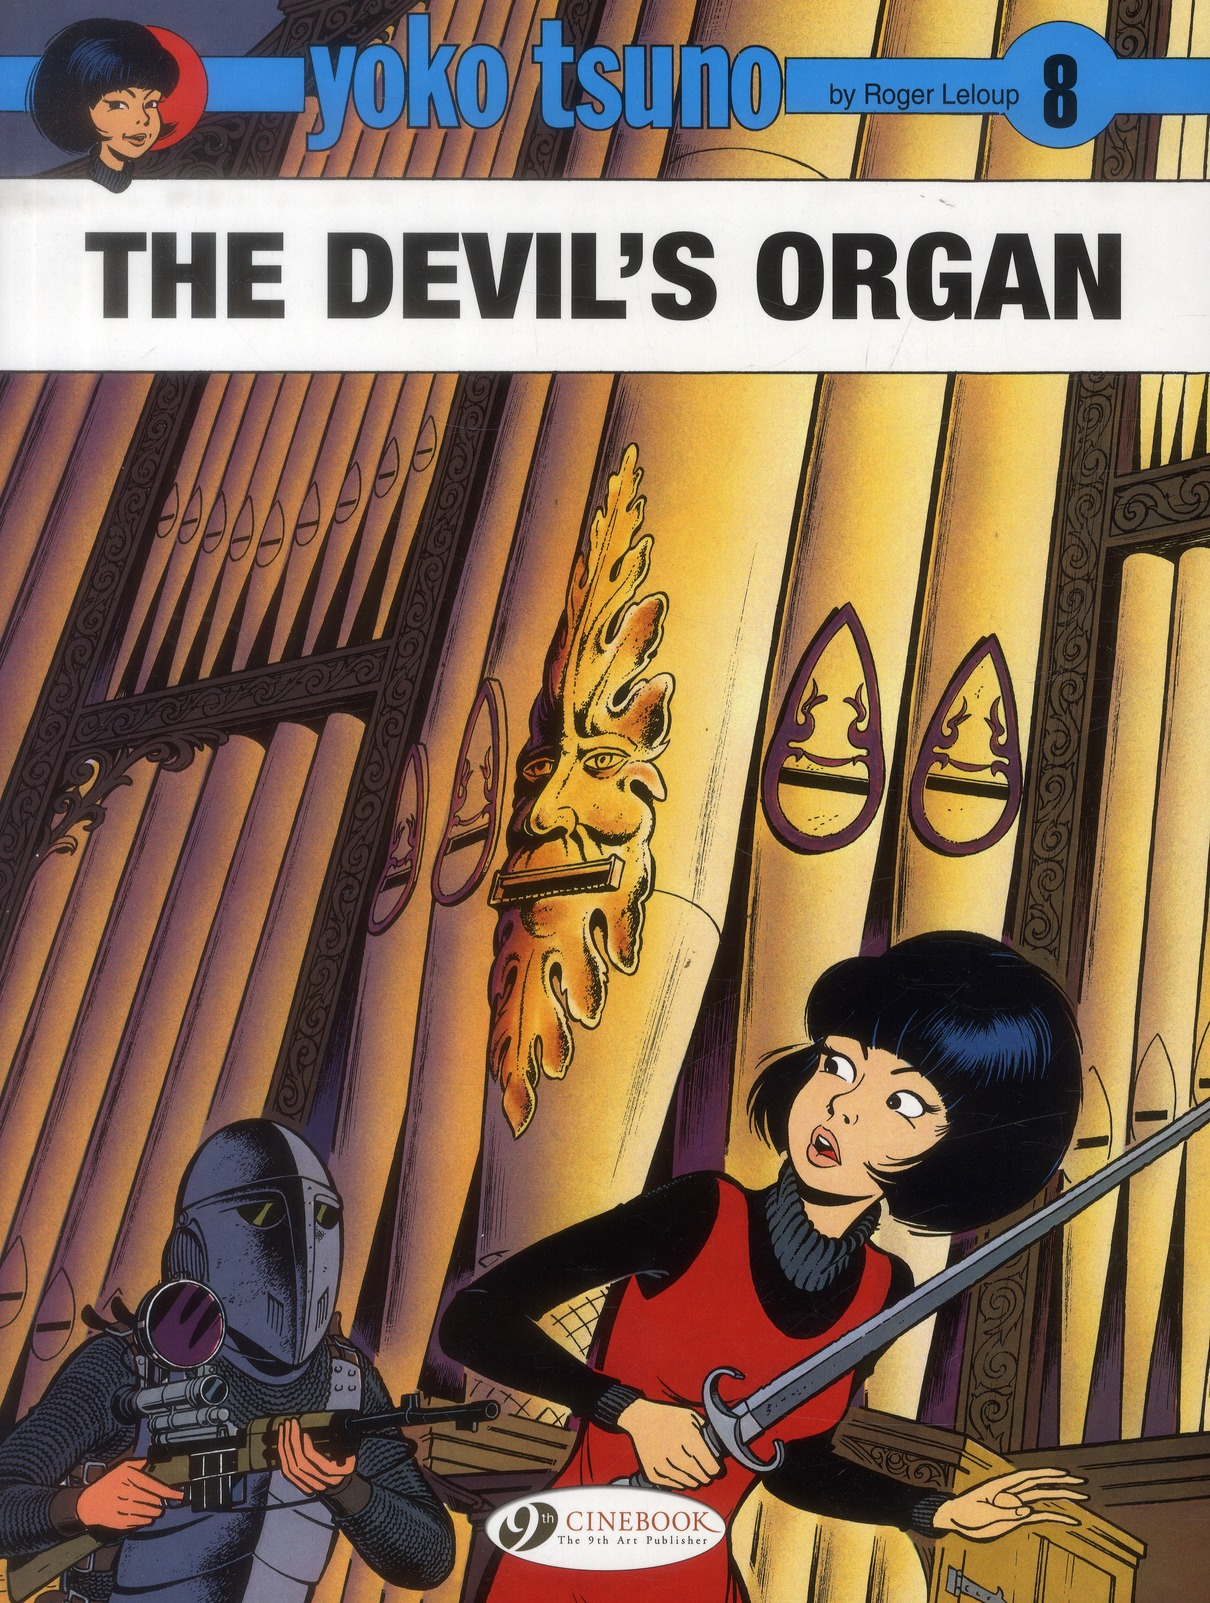 YOKO TSUNO - TOME 8 THE DEVIL'S ORGAN